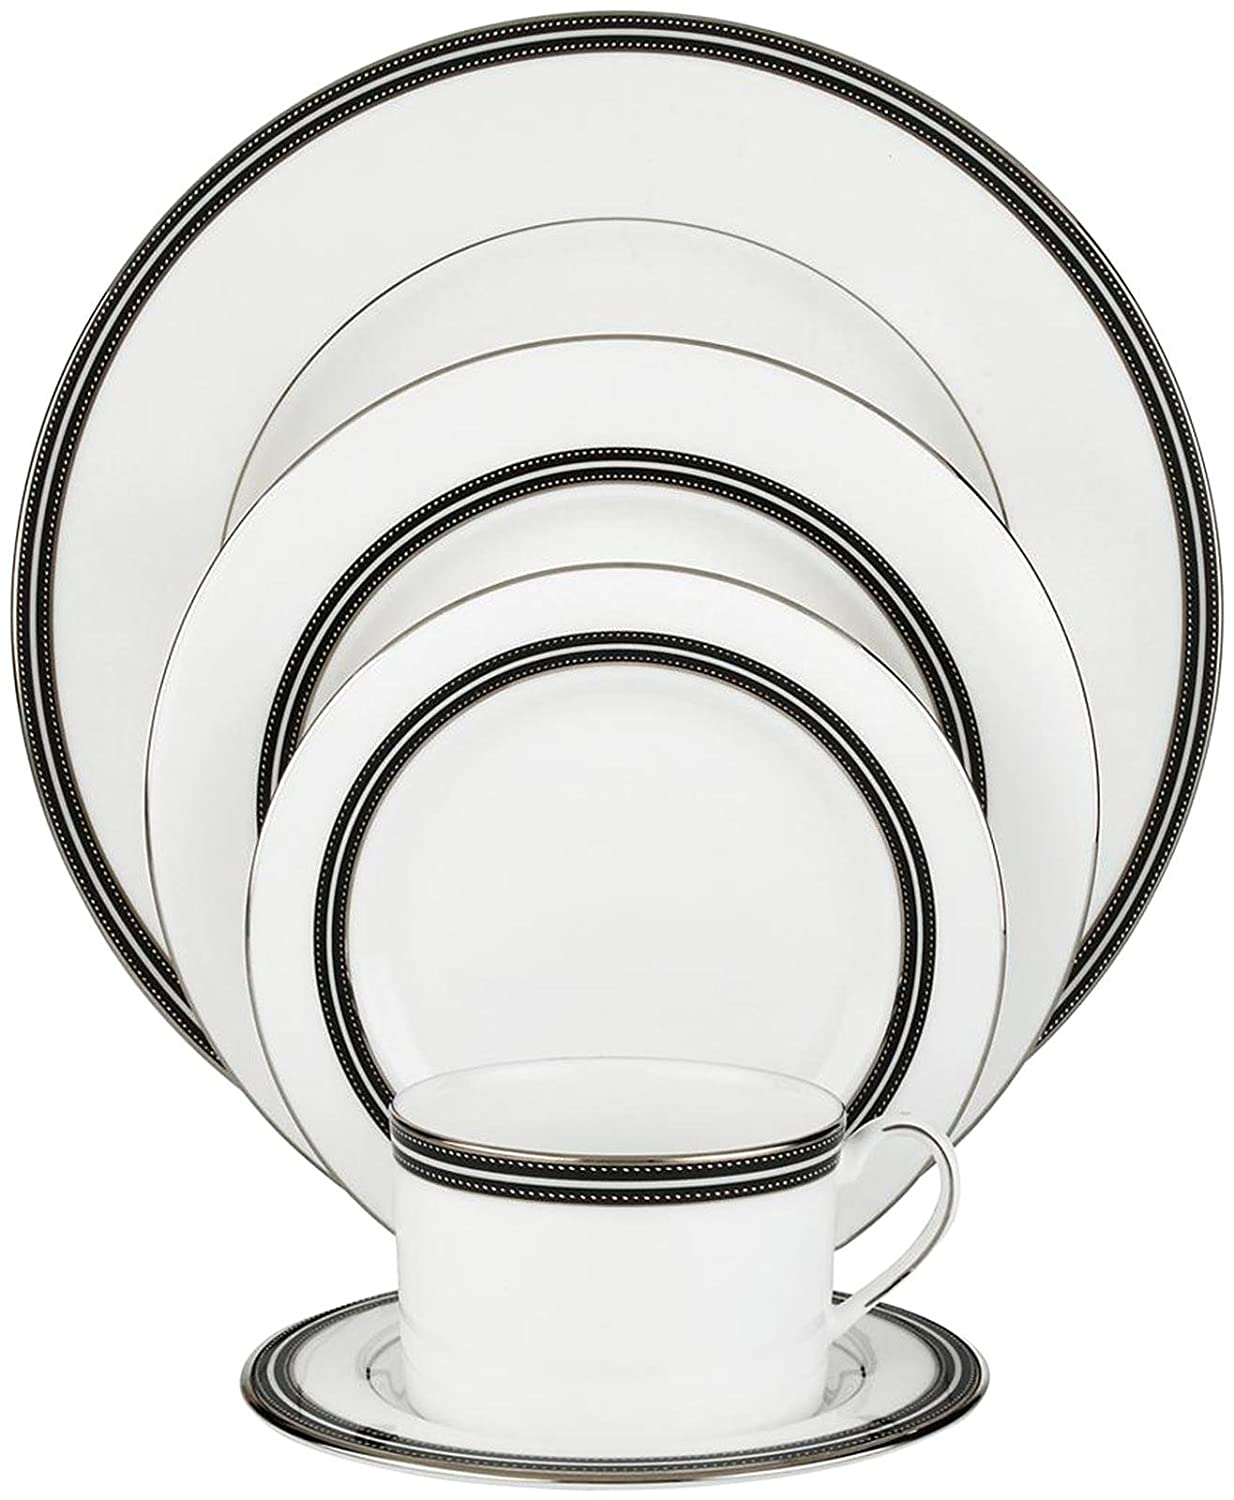 White Bone China with Black and Platinum Details L6257935 Kate Spade New York Union Street Dinnerware 5-Piece Place Setting